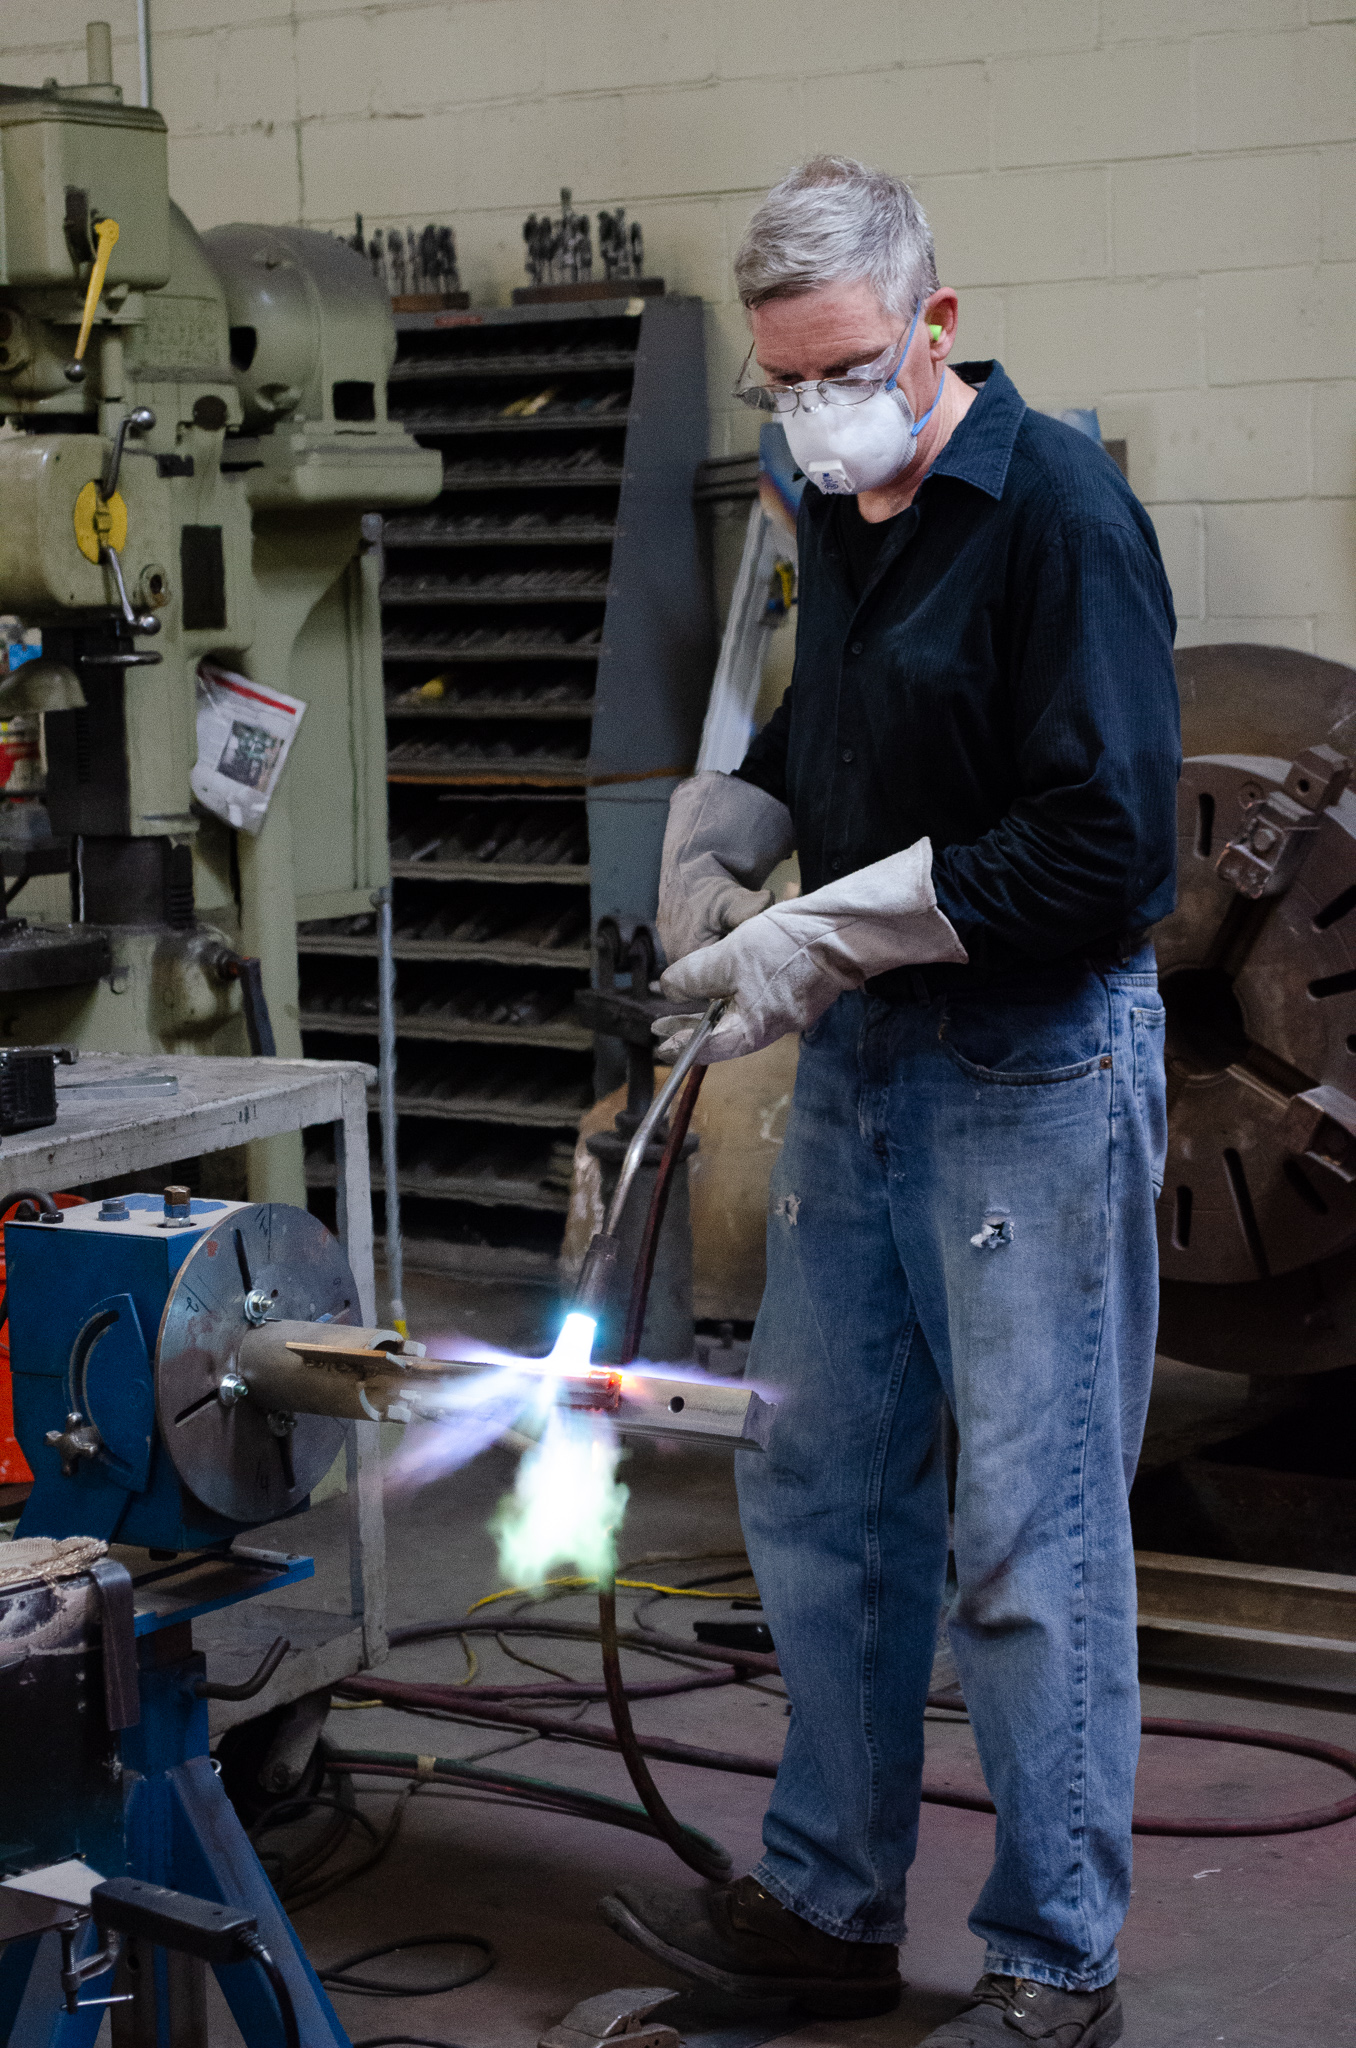 One of our expert craftsman applying heat on a spray and fuse repair